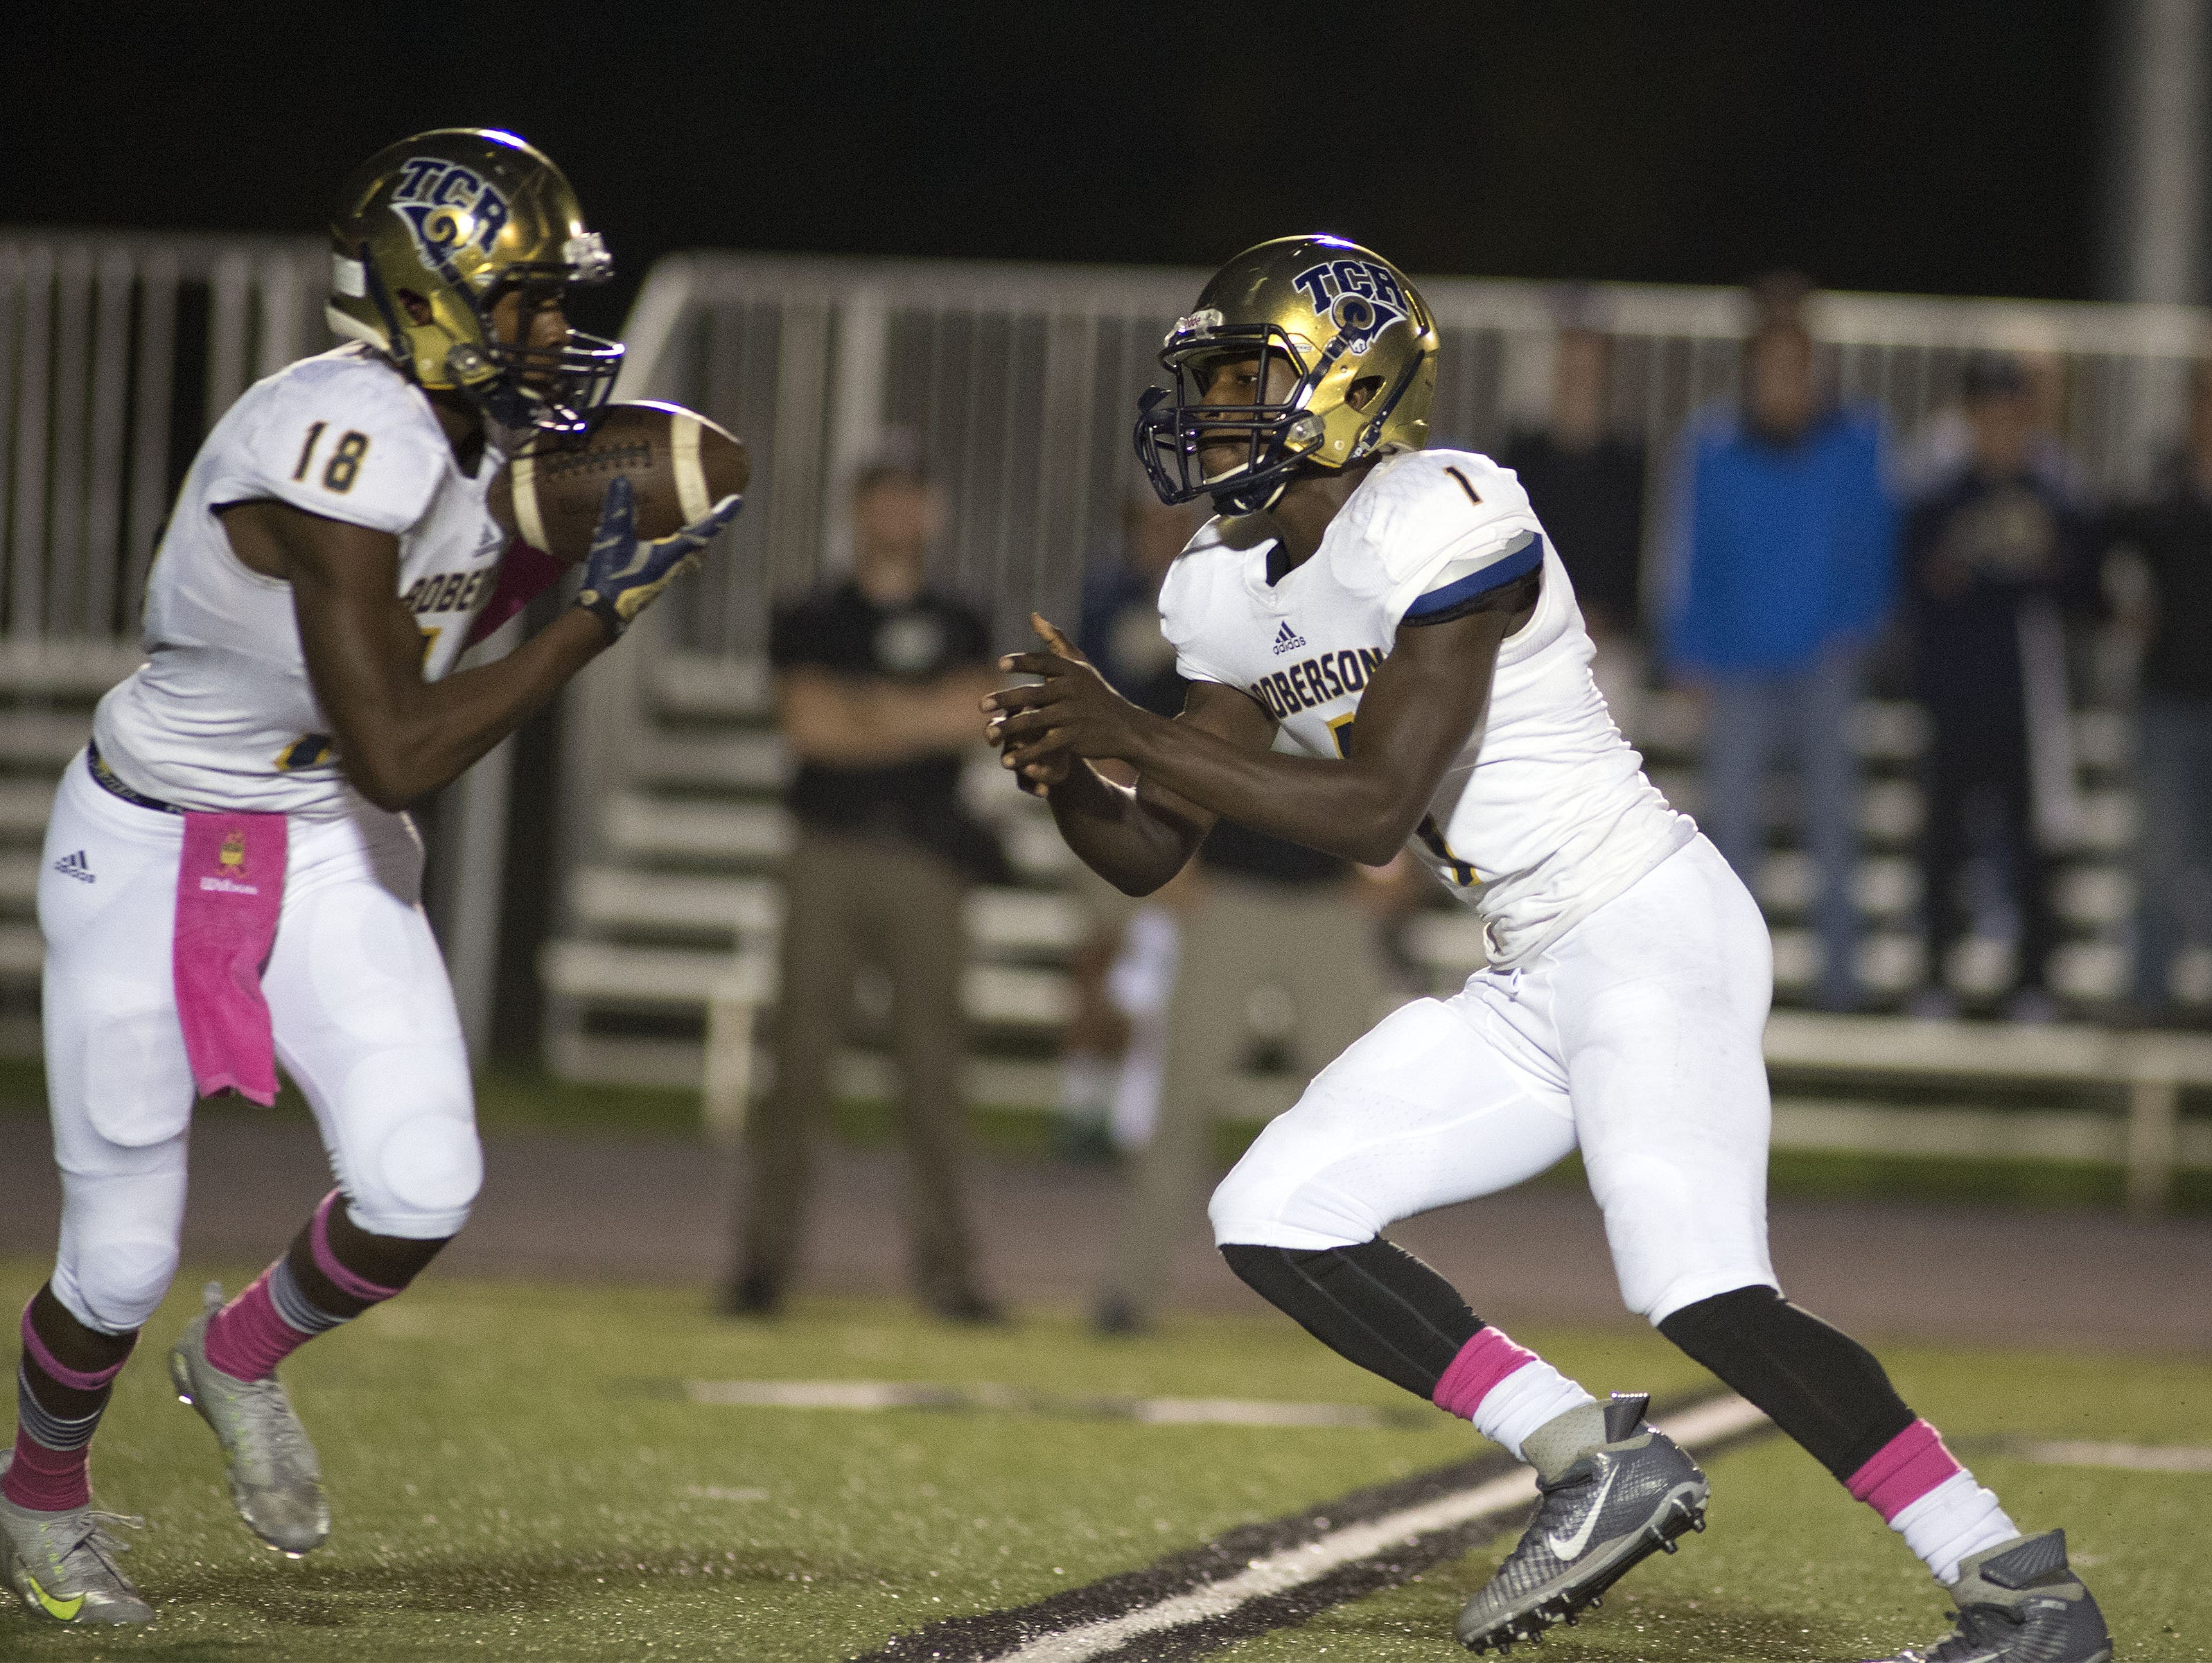 Roberson quarterback Eric Robinson (1) pitches the ball to Dezmond Moorman during Friday's 27-24 loss at North Buncombe.